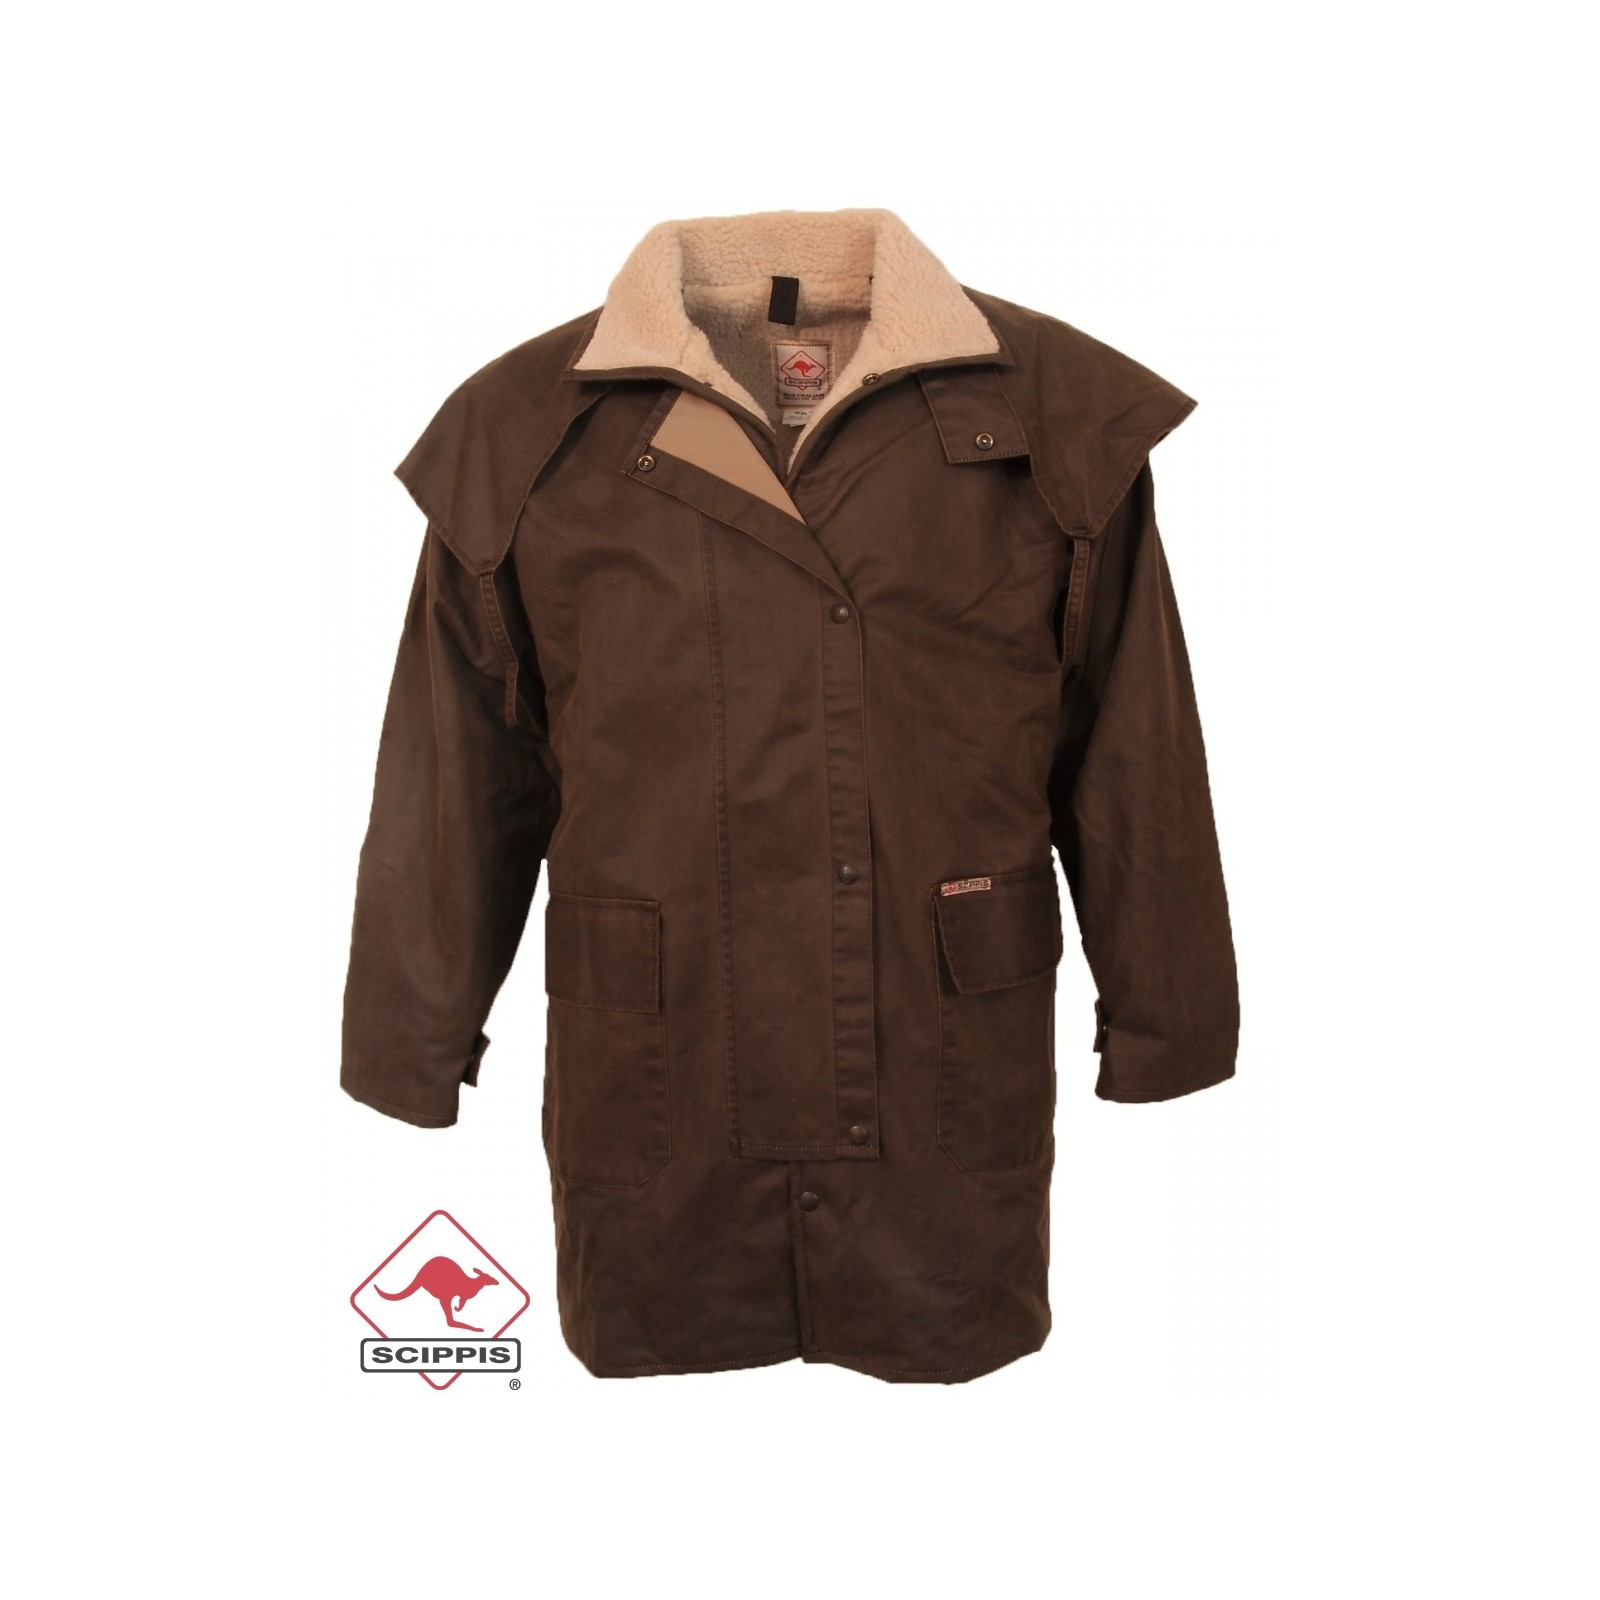 Scippis Mountain Riding Jacket Oilskin